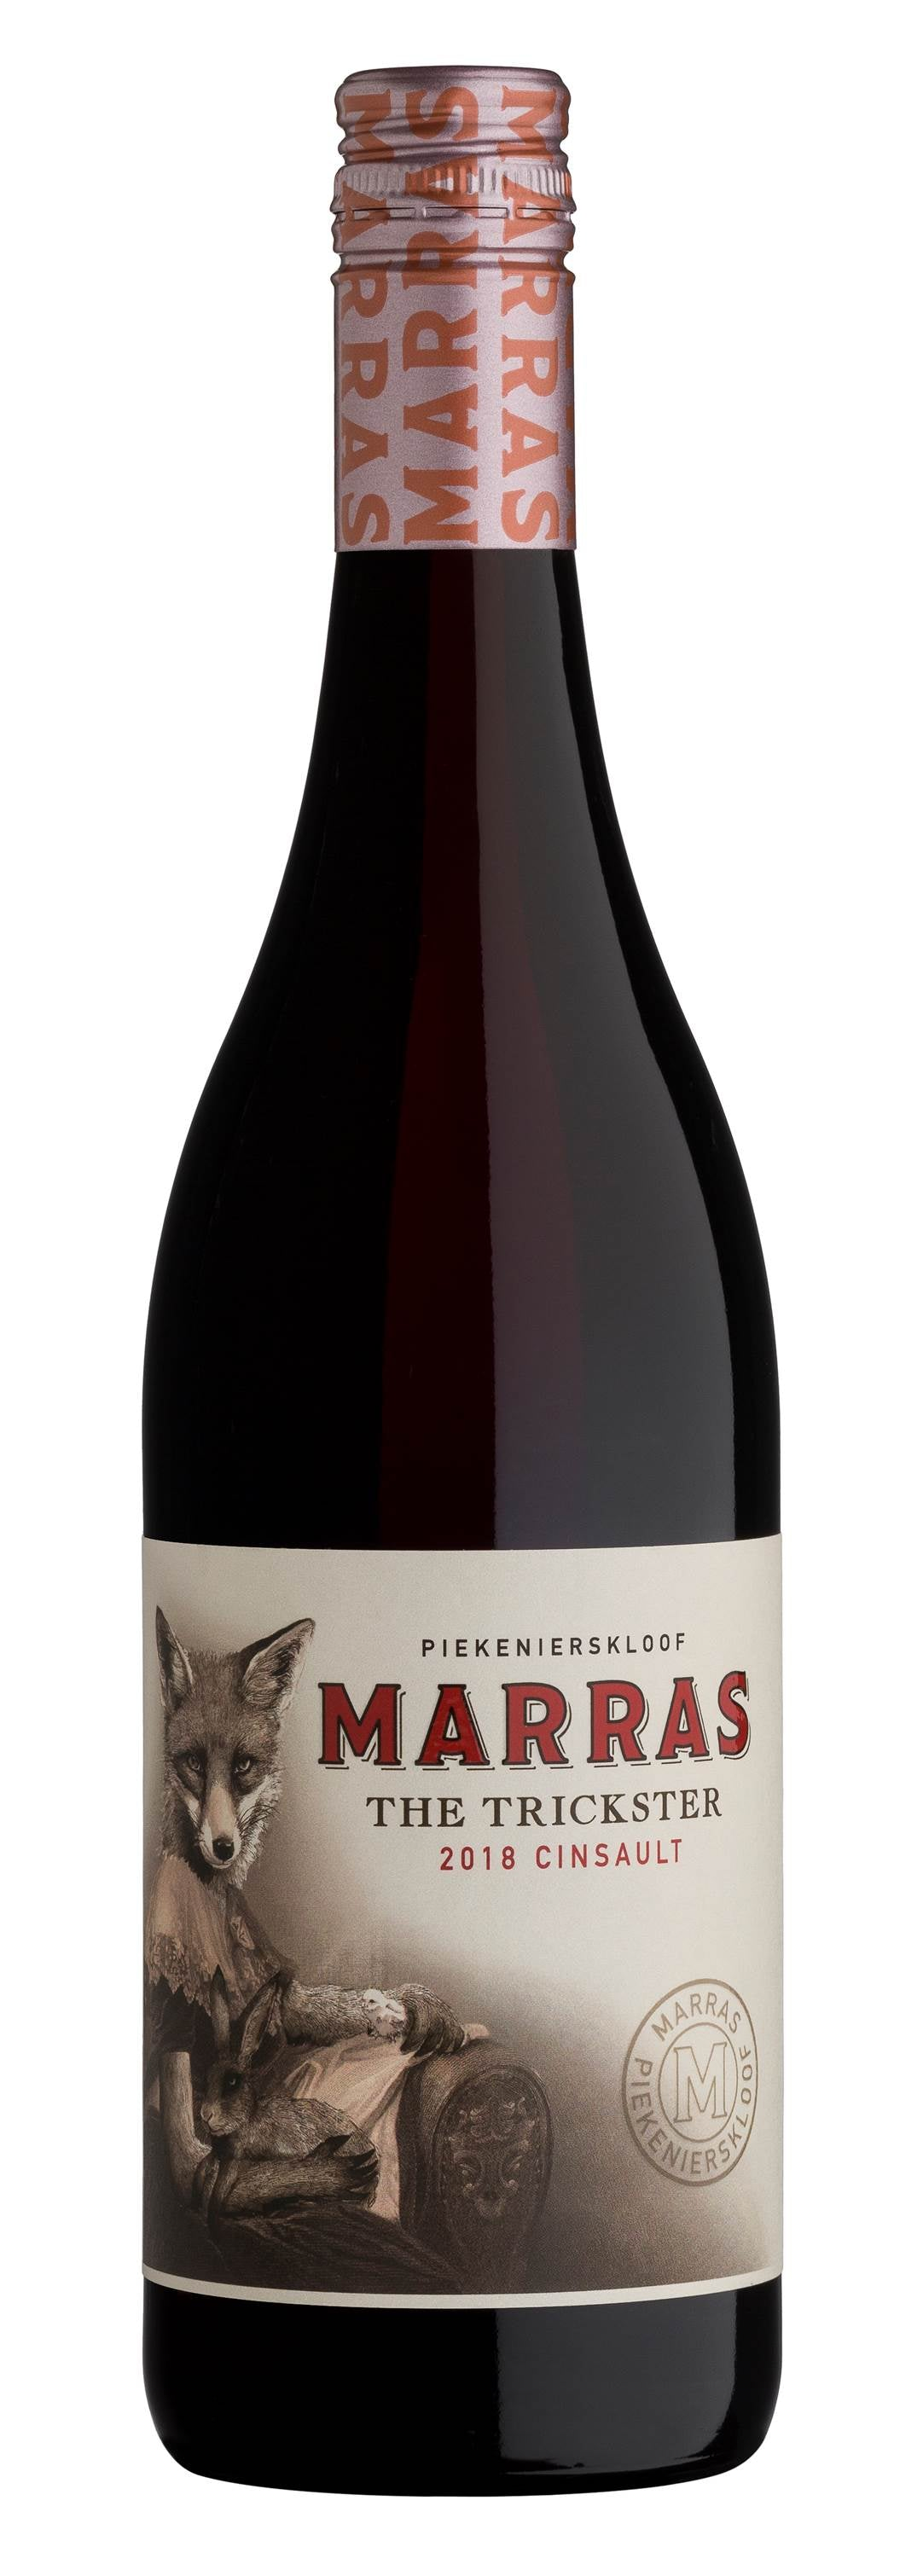 MARRAS The Trickster Cinsault 2019